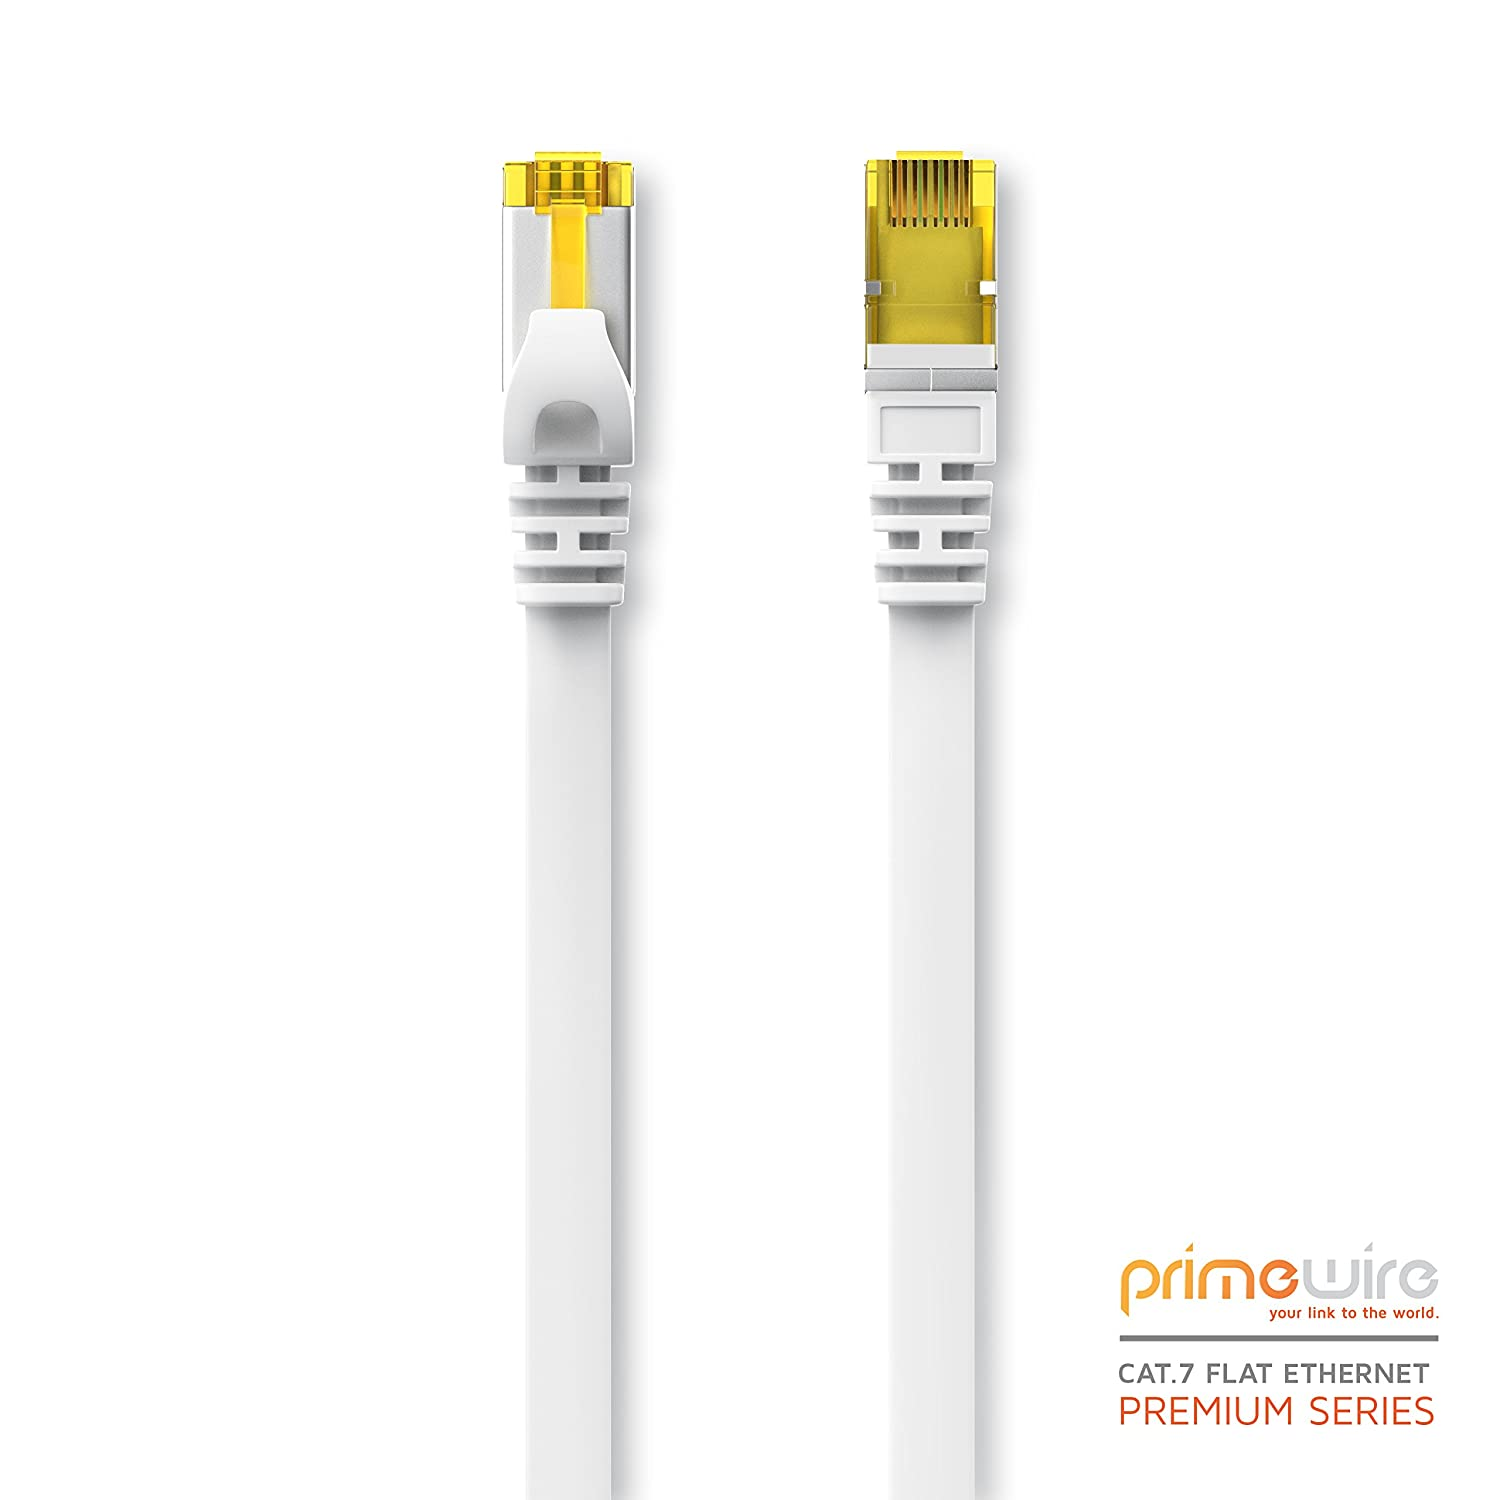 S // FTP Shielding compatible with CAT.5 // CAT.5e // CAT.6 white Switch // Router// Modem // Access Point 3m Ethernet Cable CAT 7 Flat Design // Network Cable RJ45 10Gbps Patchcable